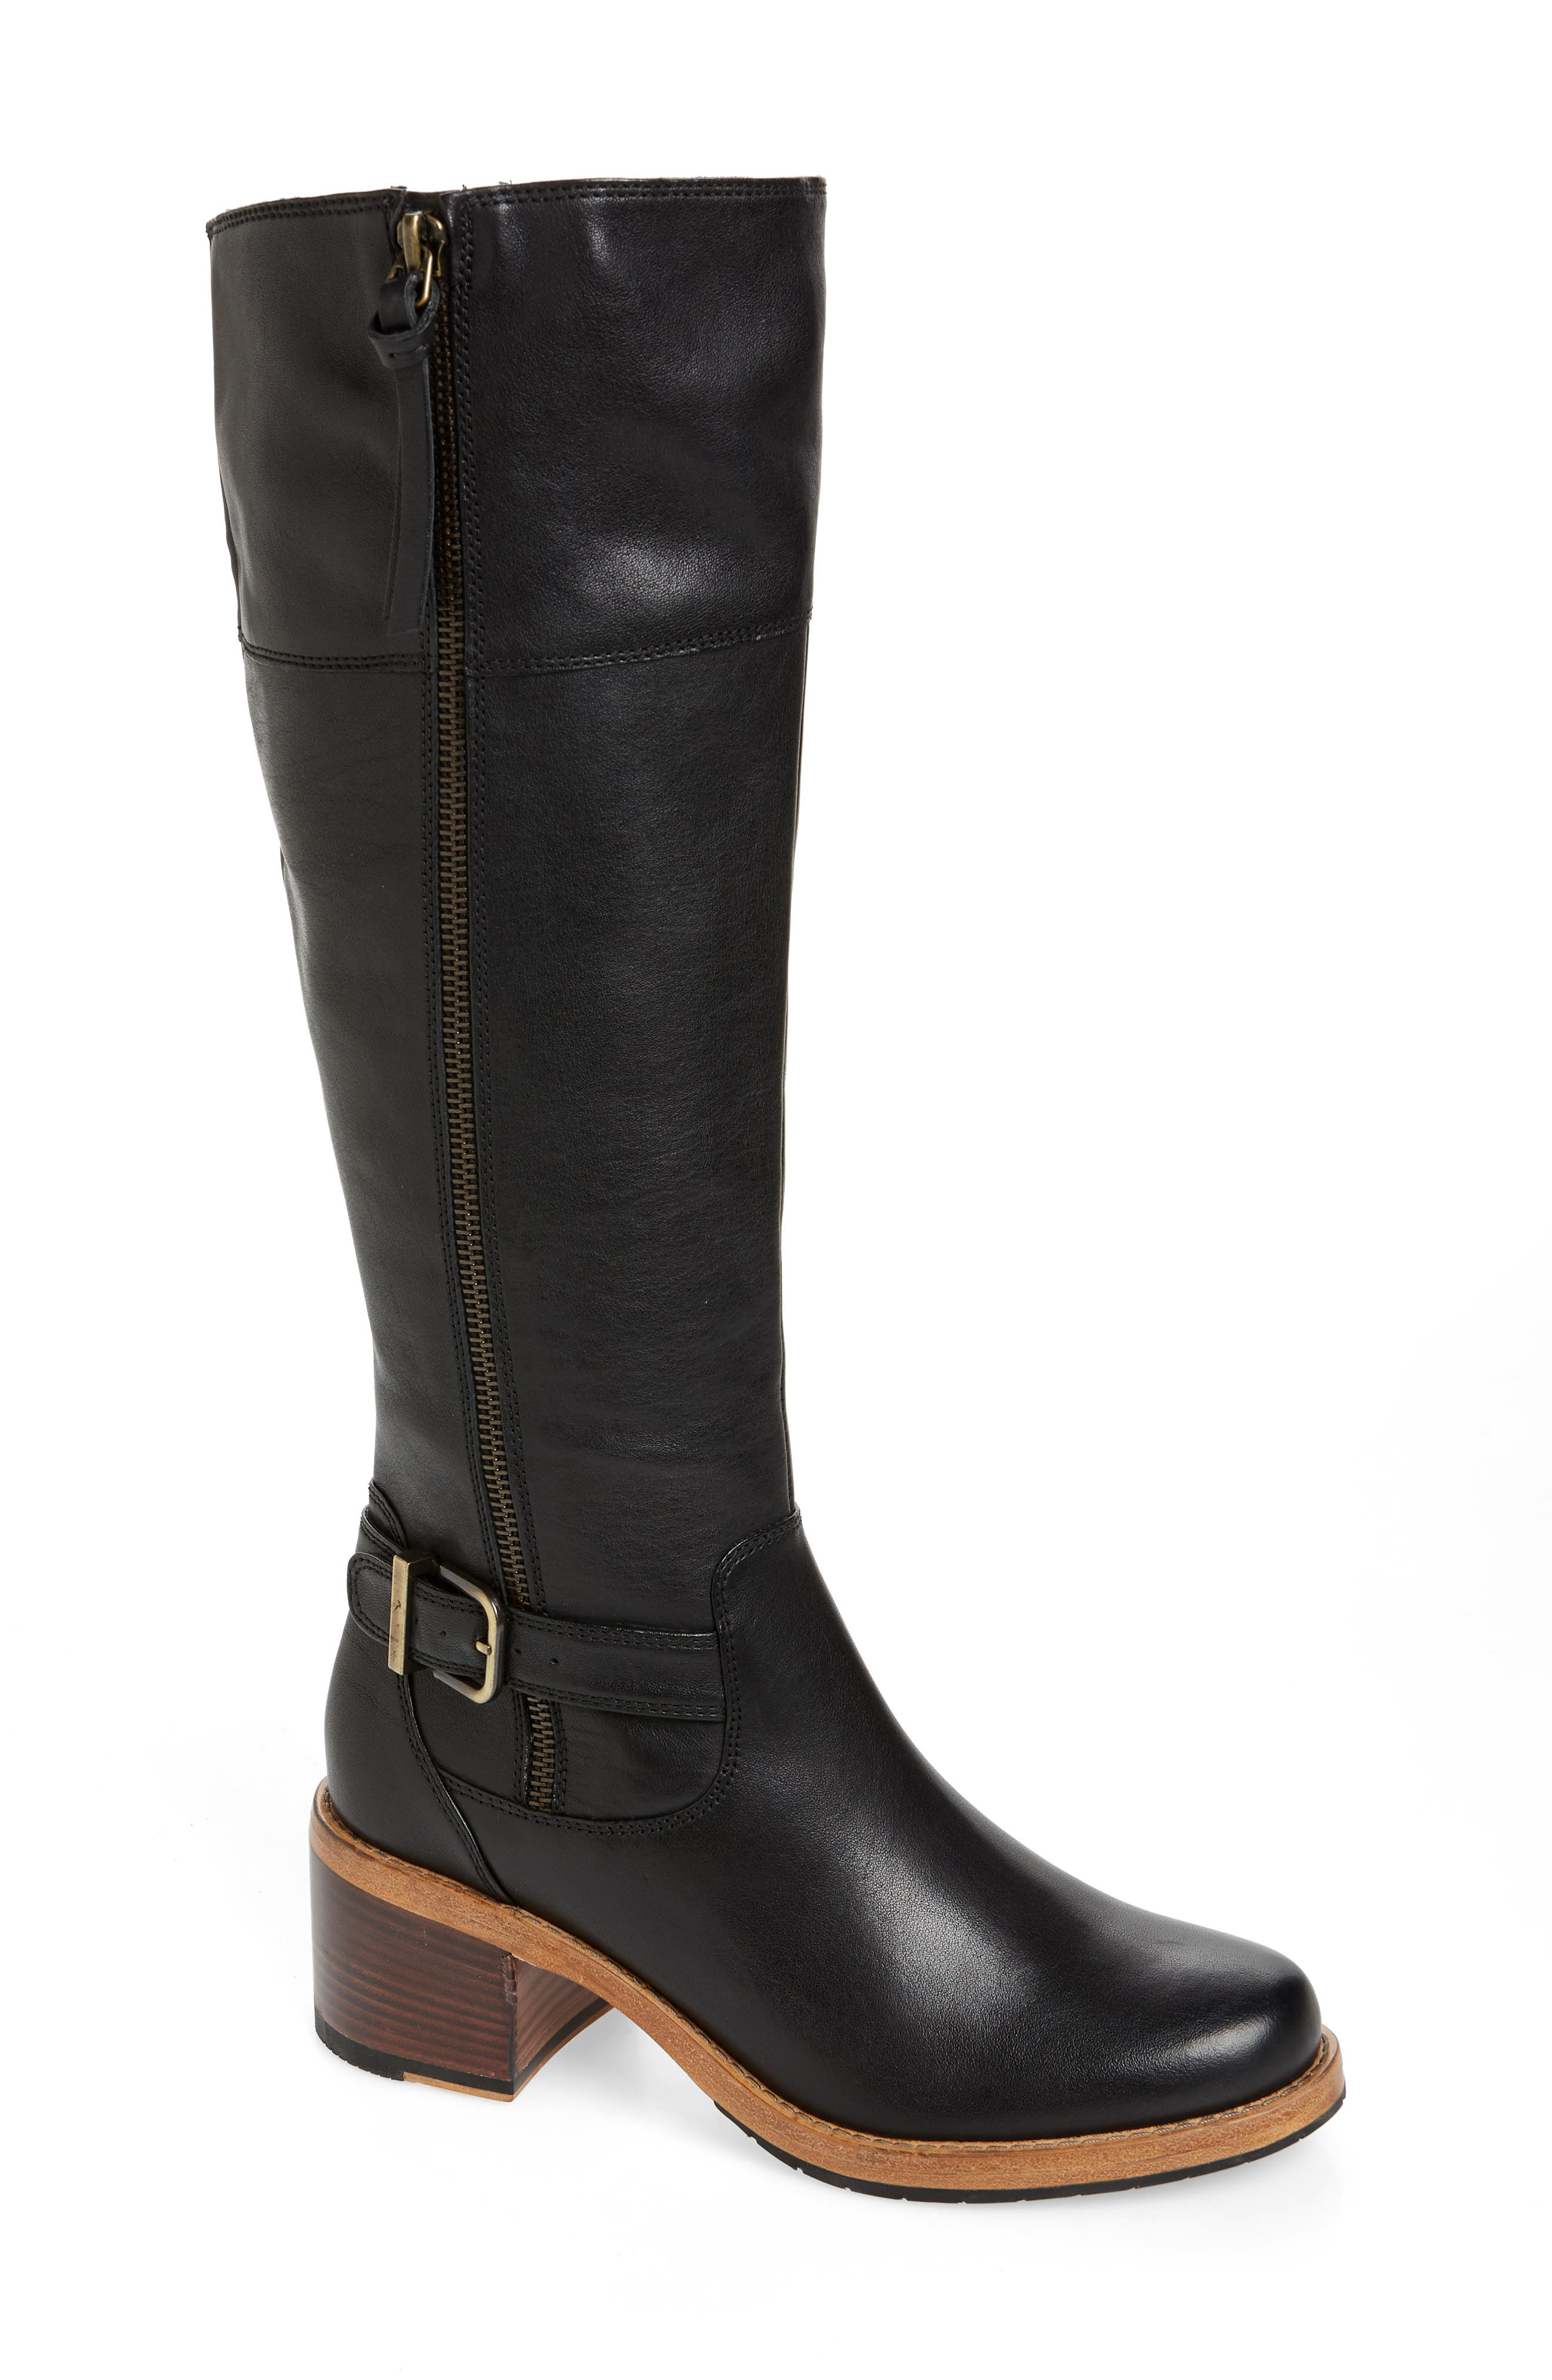 CLARKS<SUP>®</SUP>, Clarkdale Sona Boot, Main thumbnail 1, color, BLACK LEATHER